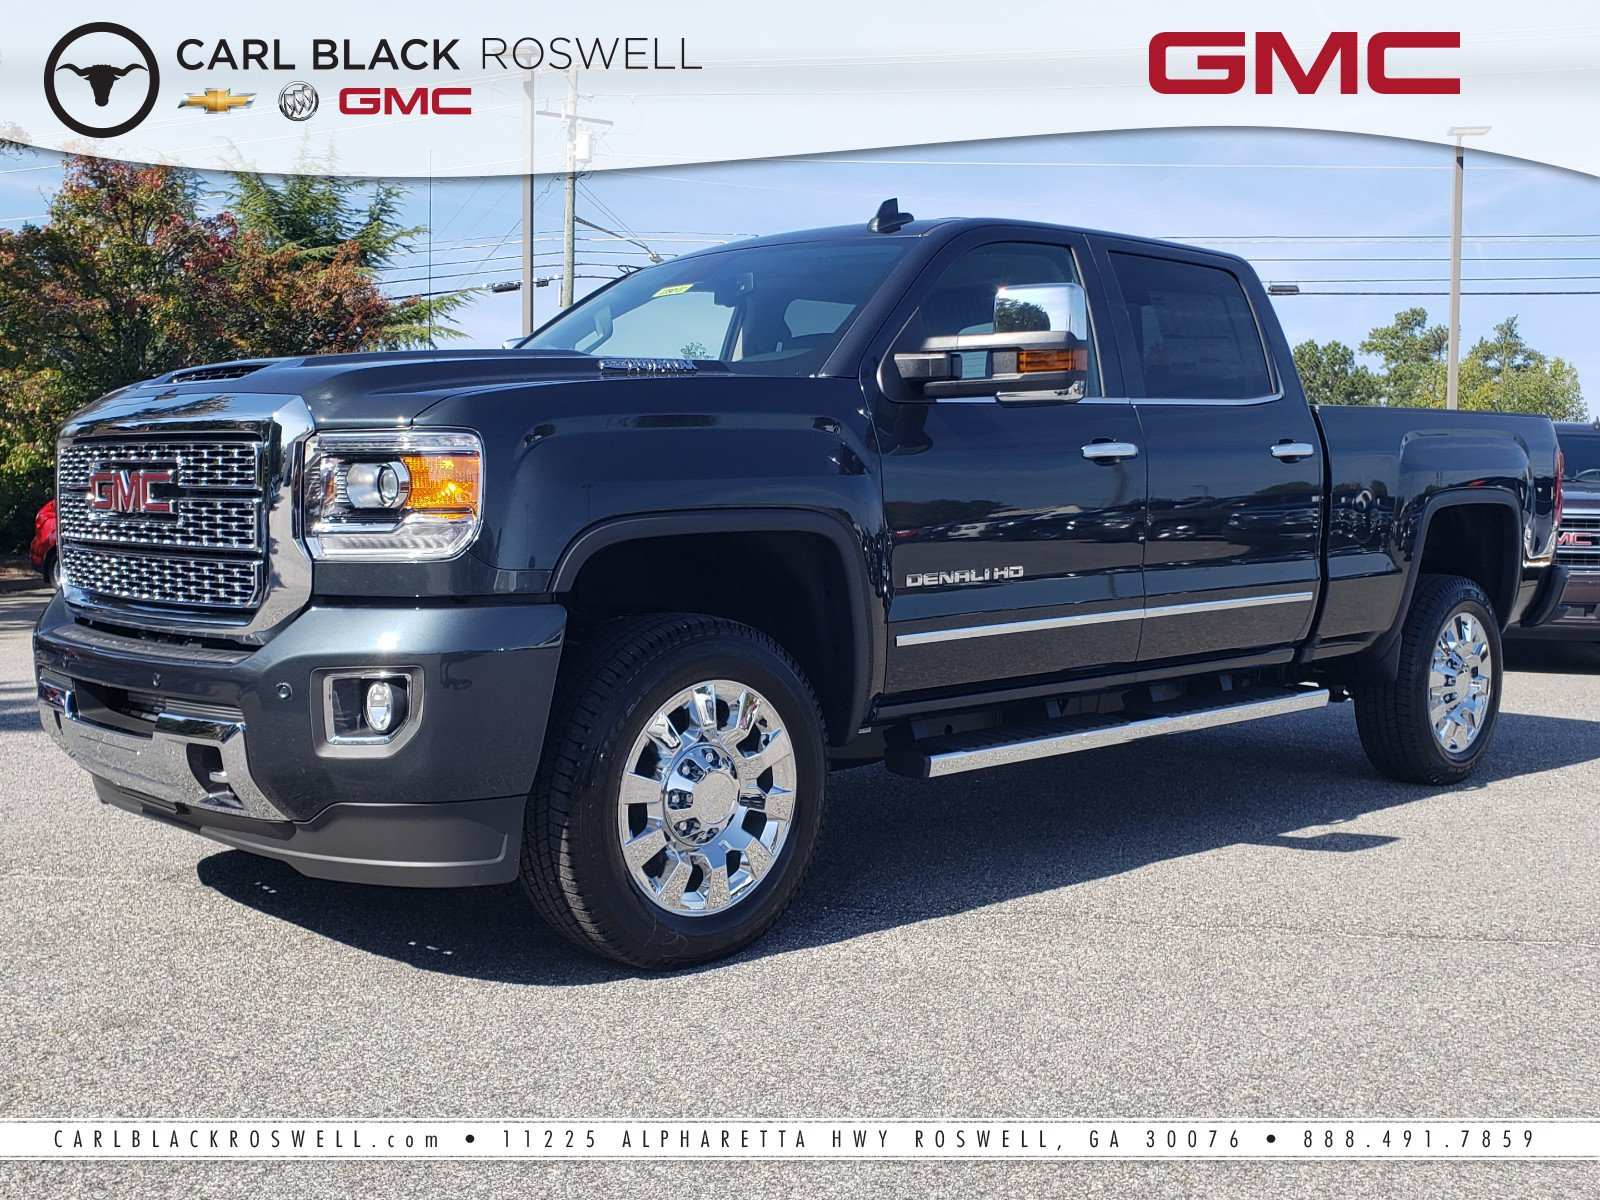 55 New 2019 GMC Sierra Hd Price Design and Review